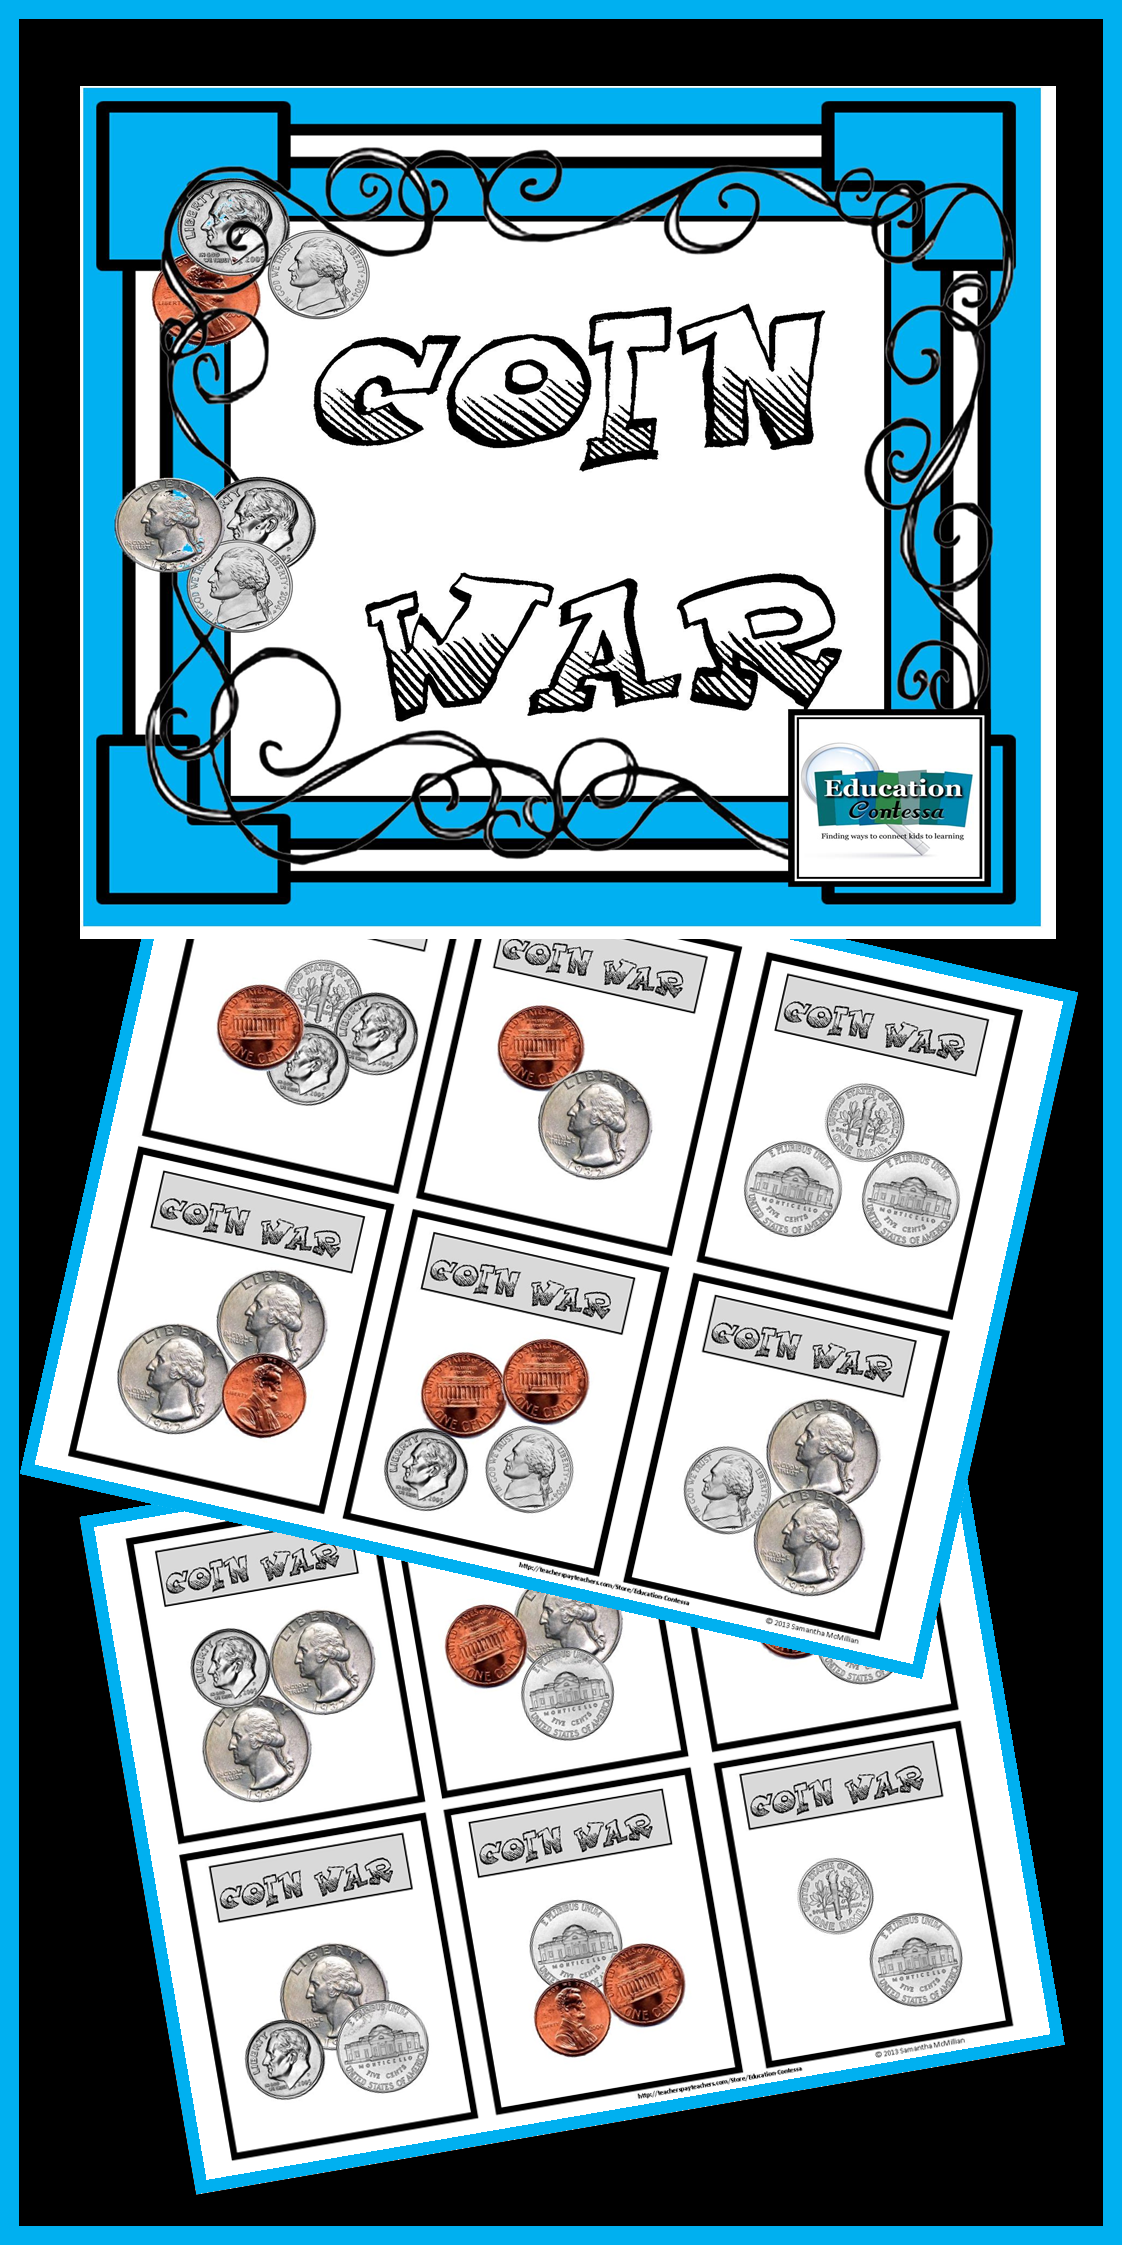 Coin war card game for practicing counting coins | Fun math ...